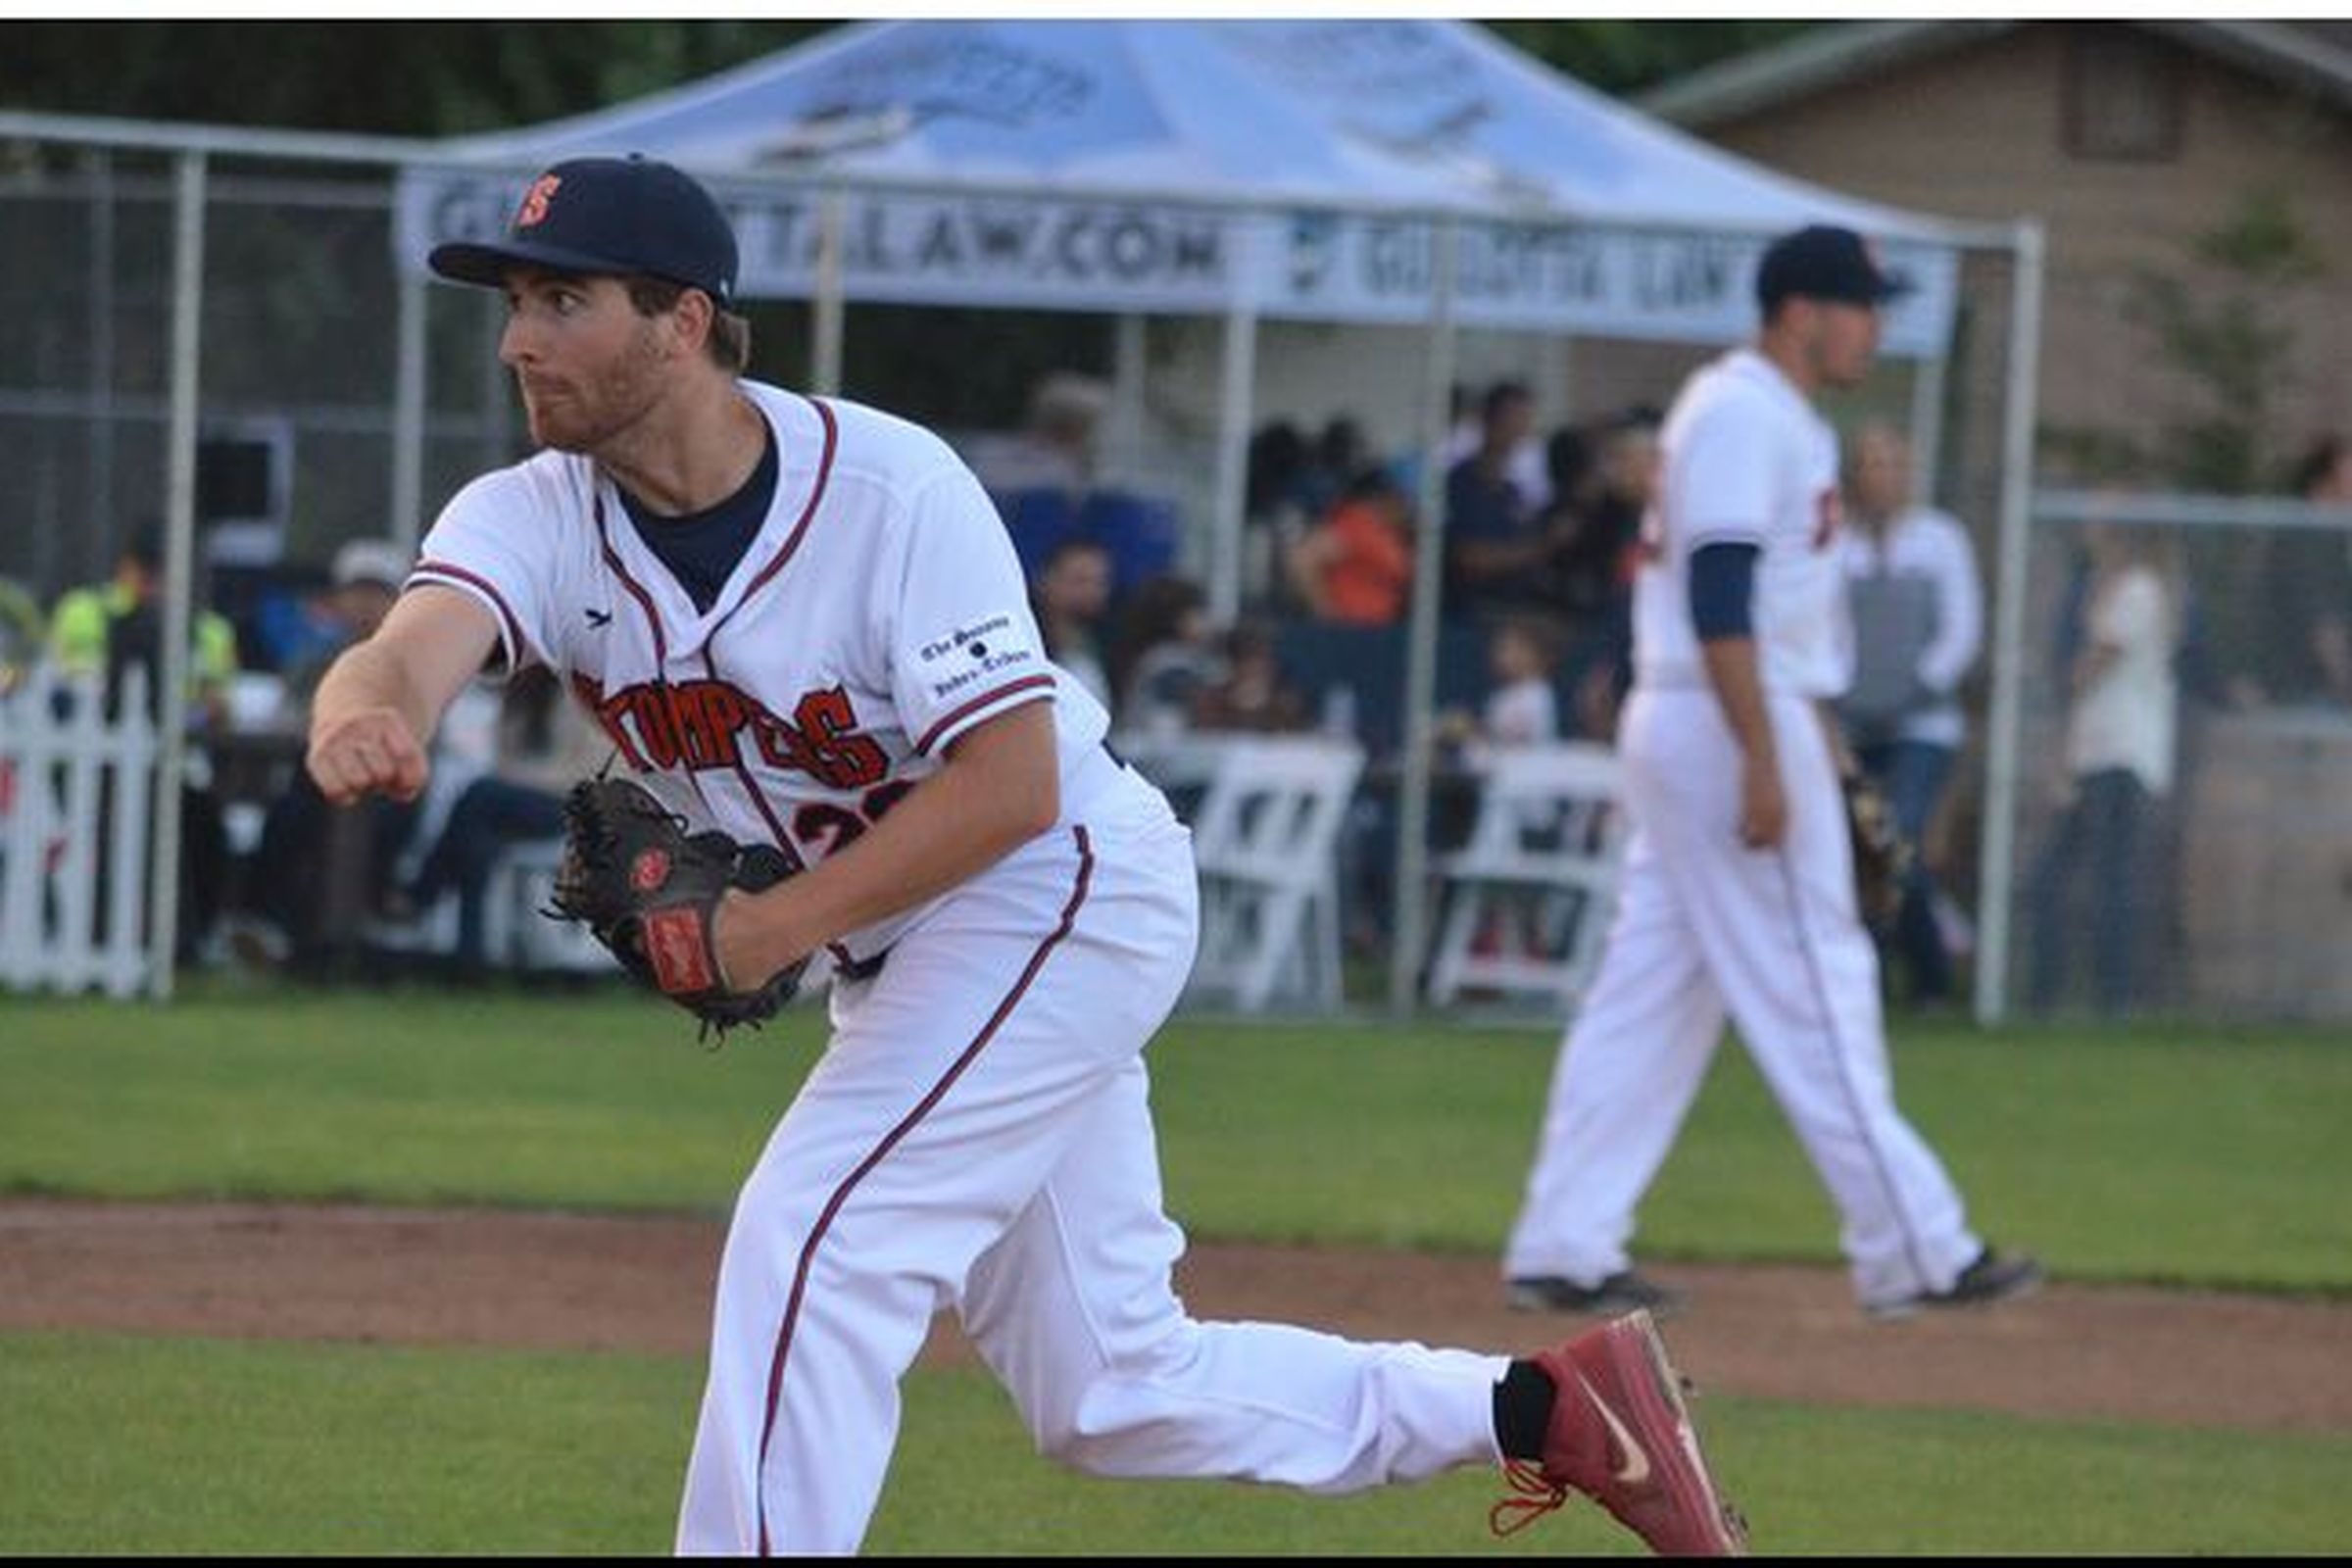 Sean Conroy warms up before his start on Thursday.   James Toy III/Sonoma Stompers